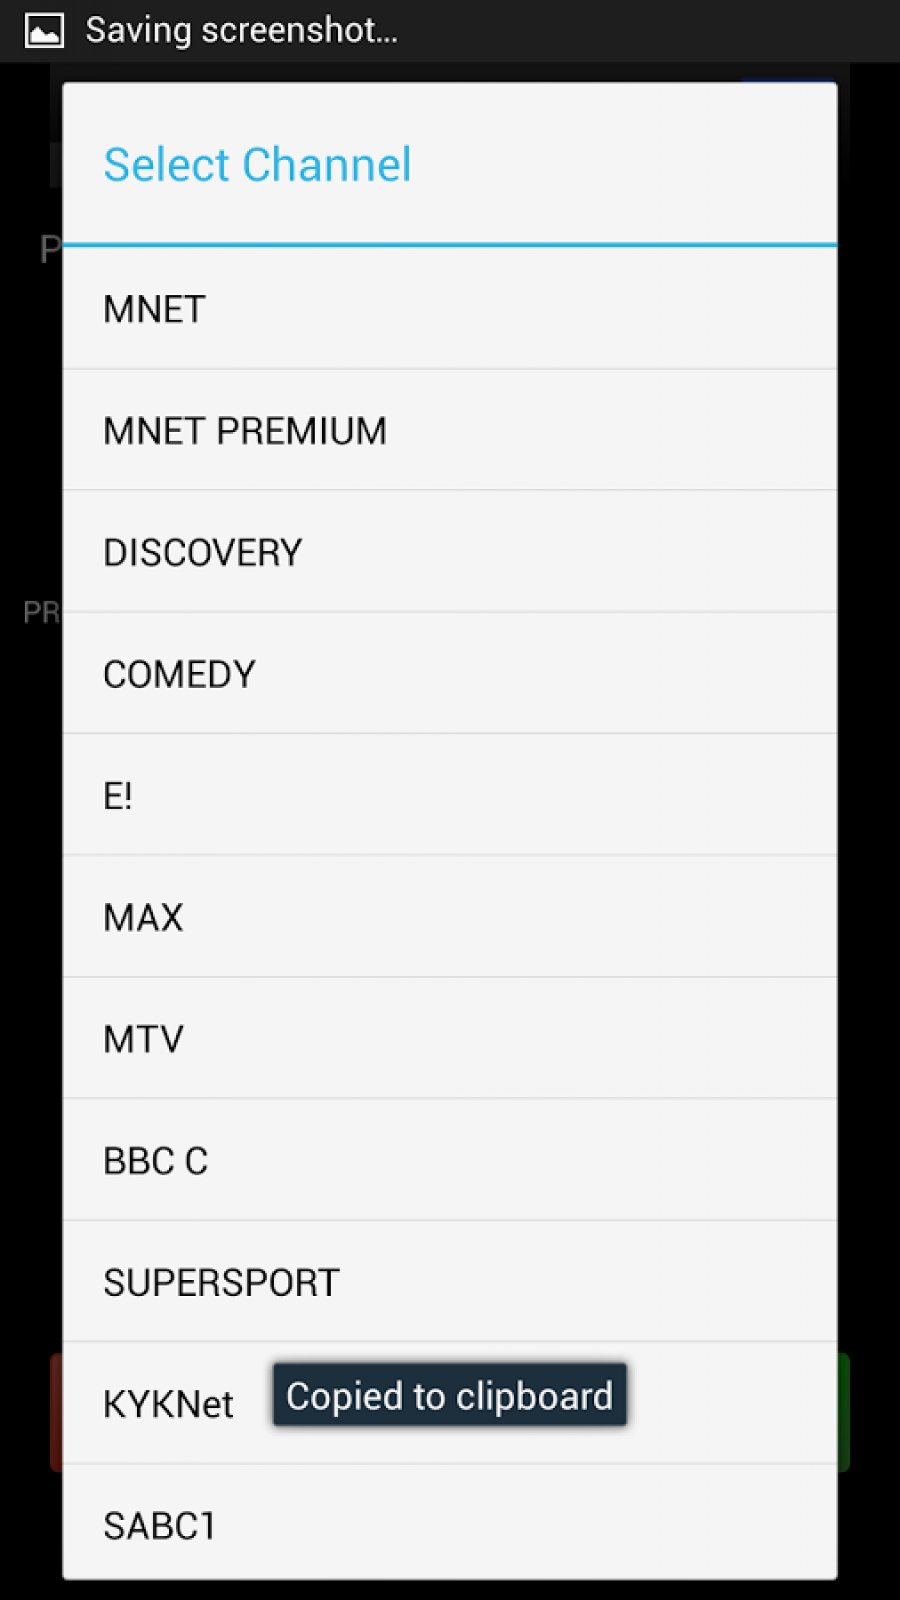 DSTV Remote Apk For Android - Approm org Best site for MOD APK Free